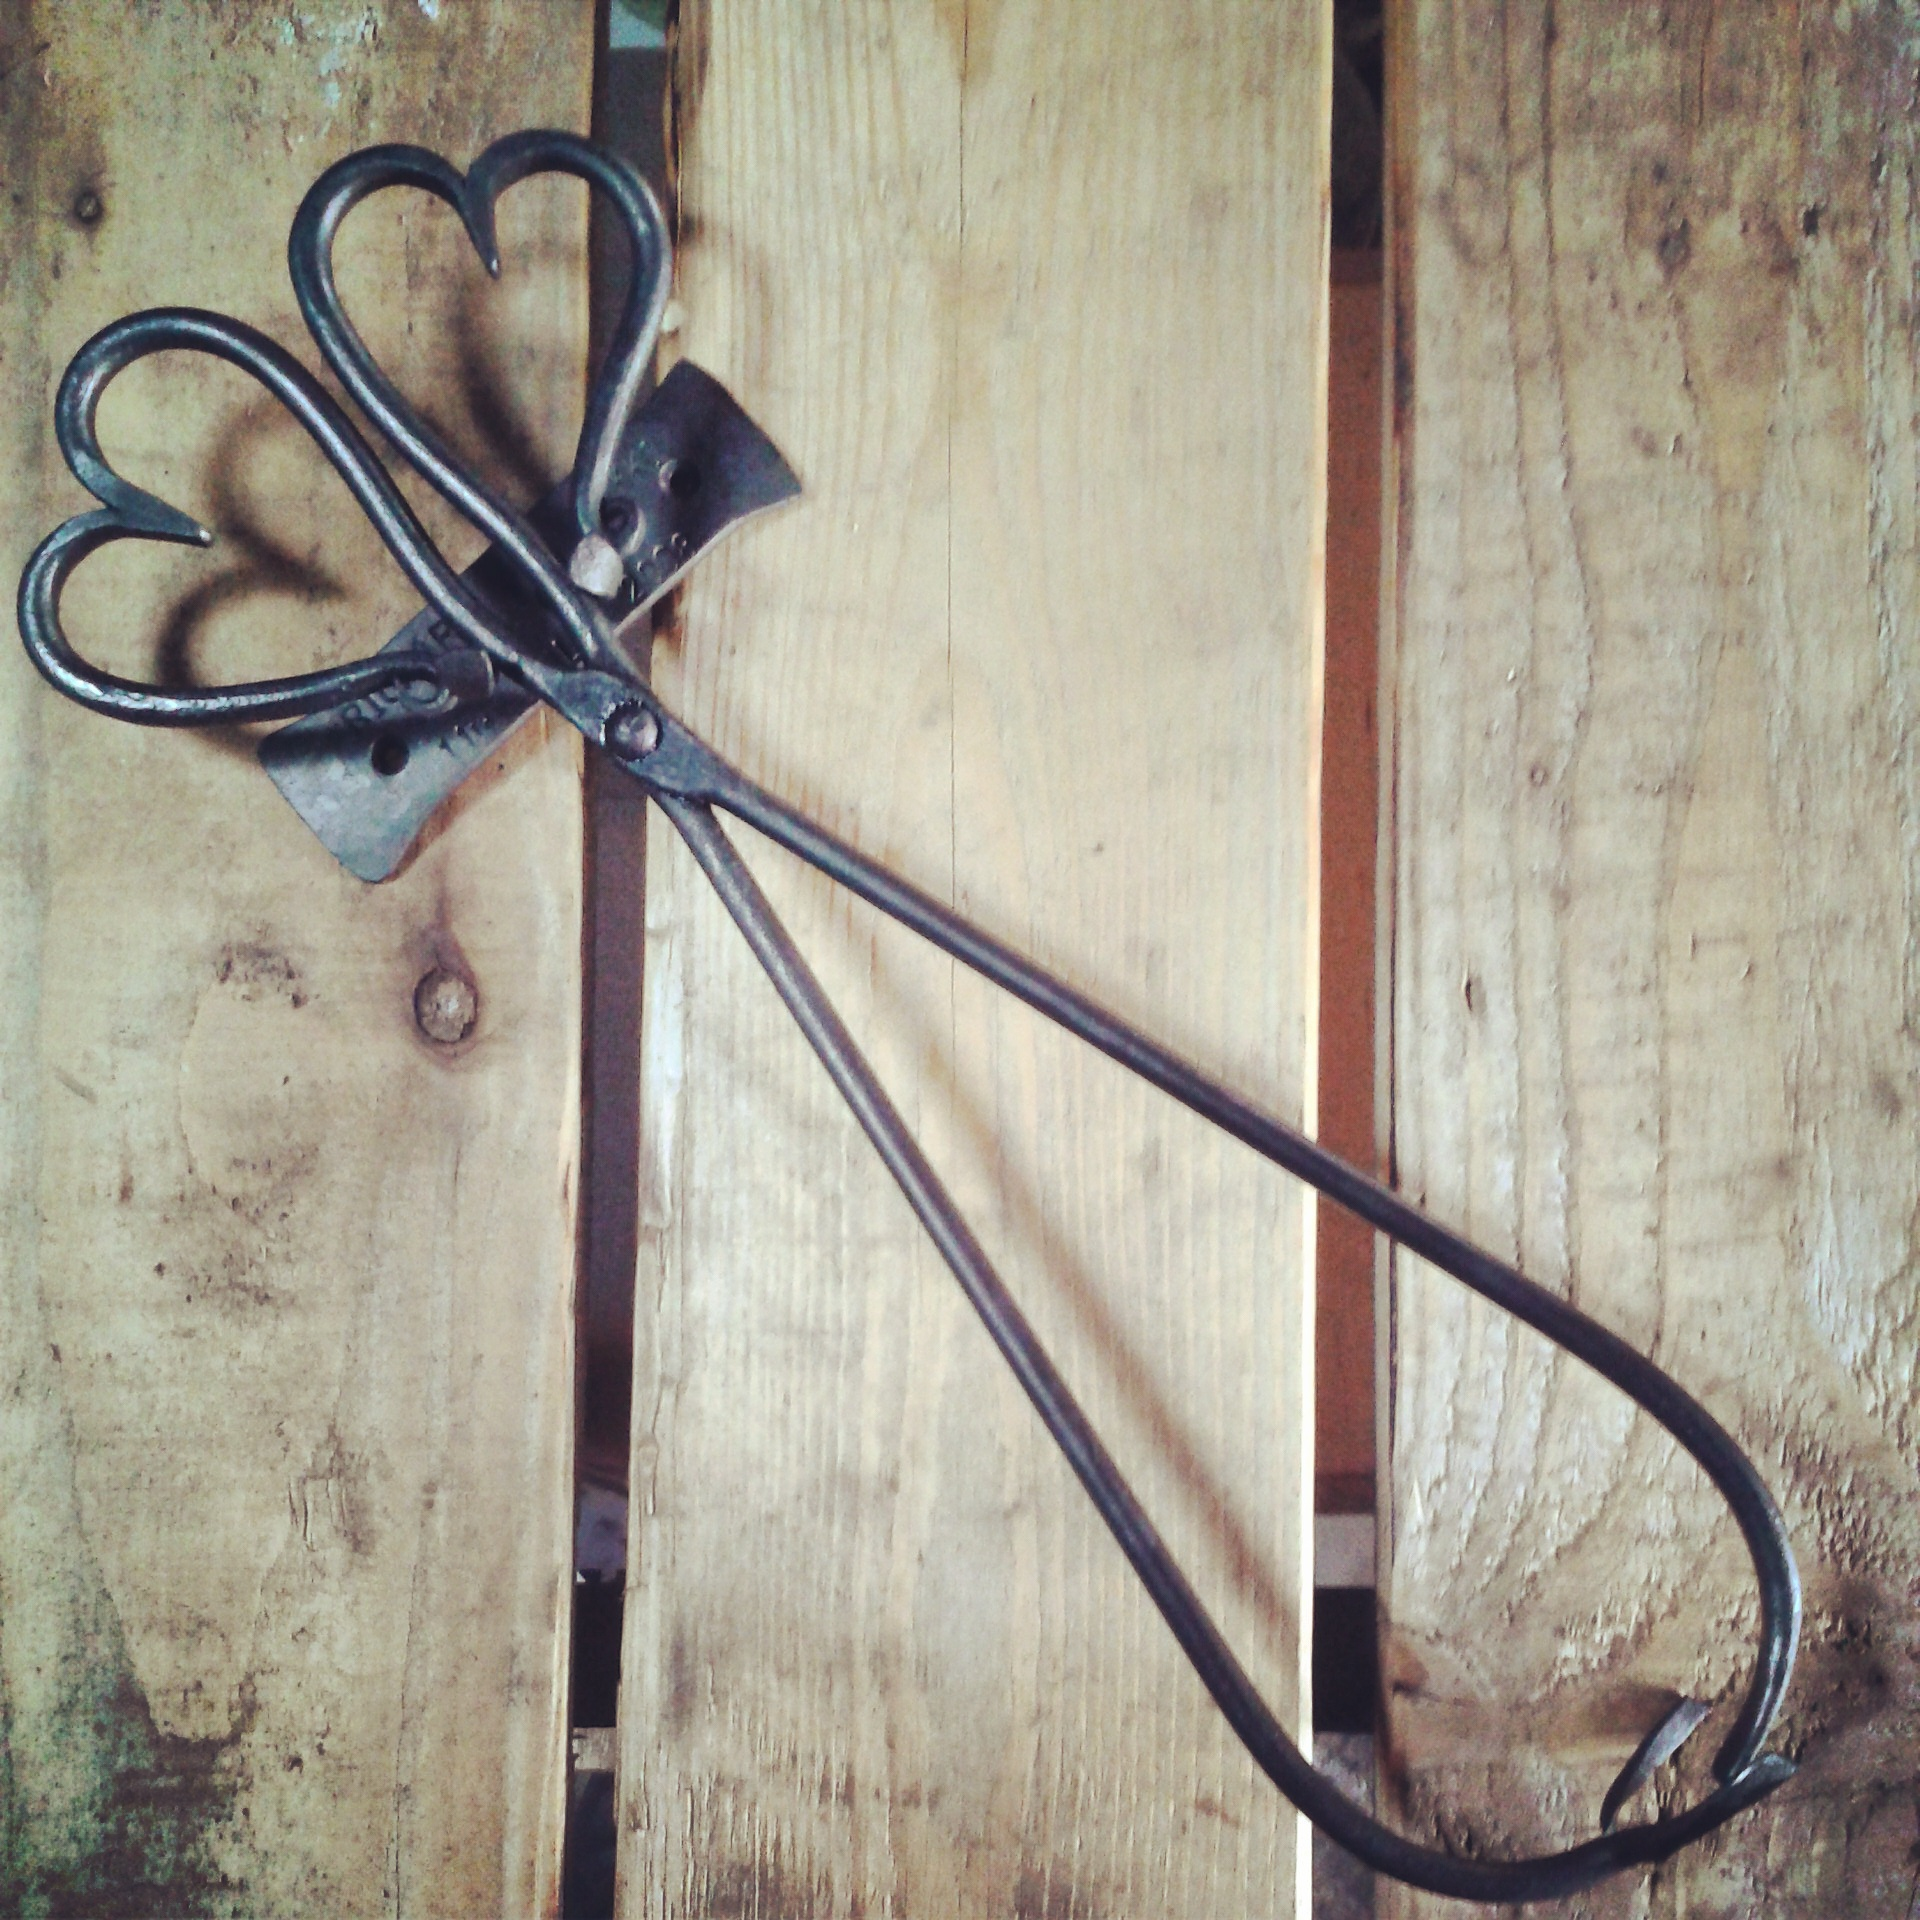 Fire tongs in the Malham Smithy heart design